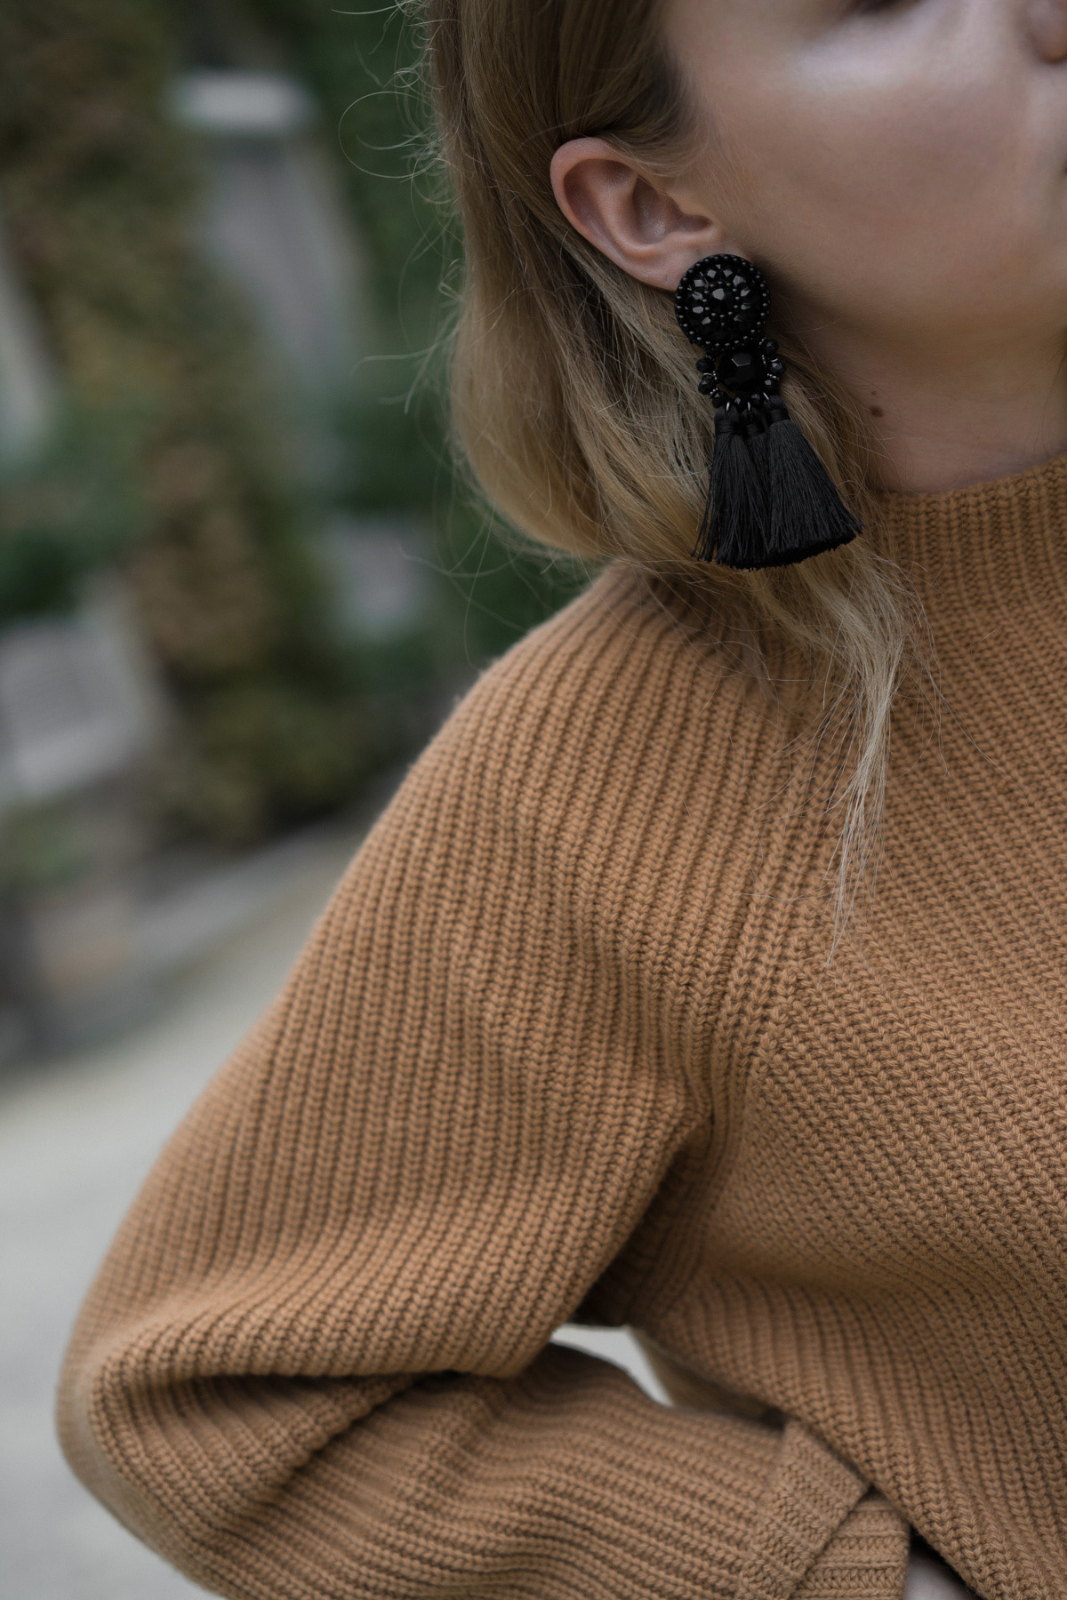 Culottes_Beige_Sweater_blog_instagram_Blogger_Fashion_deutschland_beauty_style_bloggerin_travel_berlin_thelimitsofcontrol